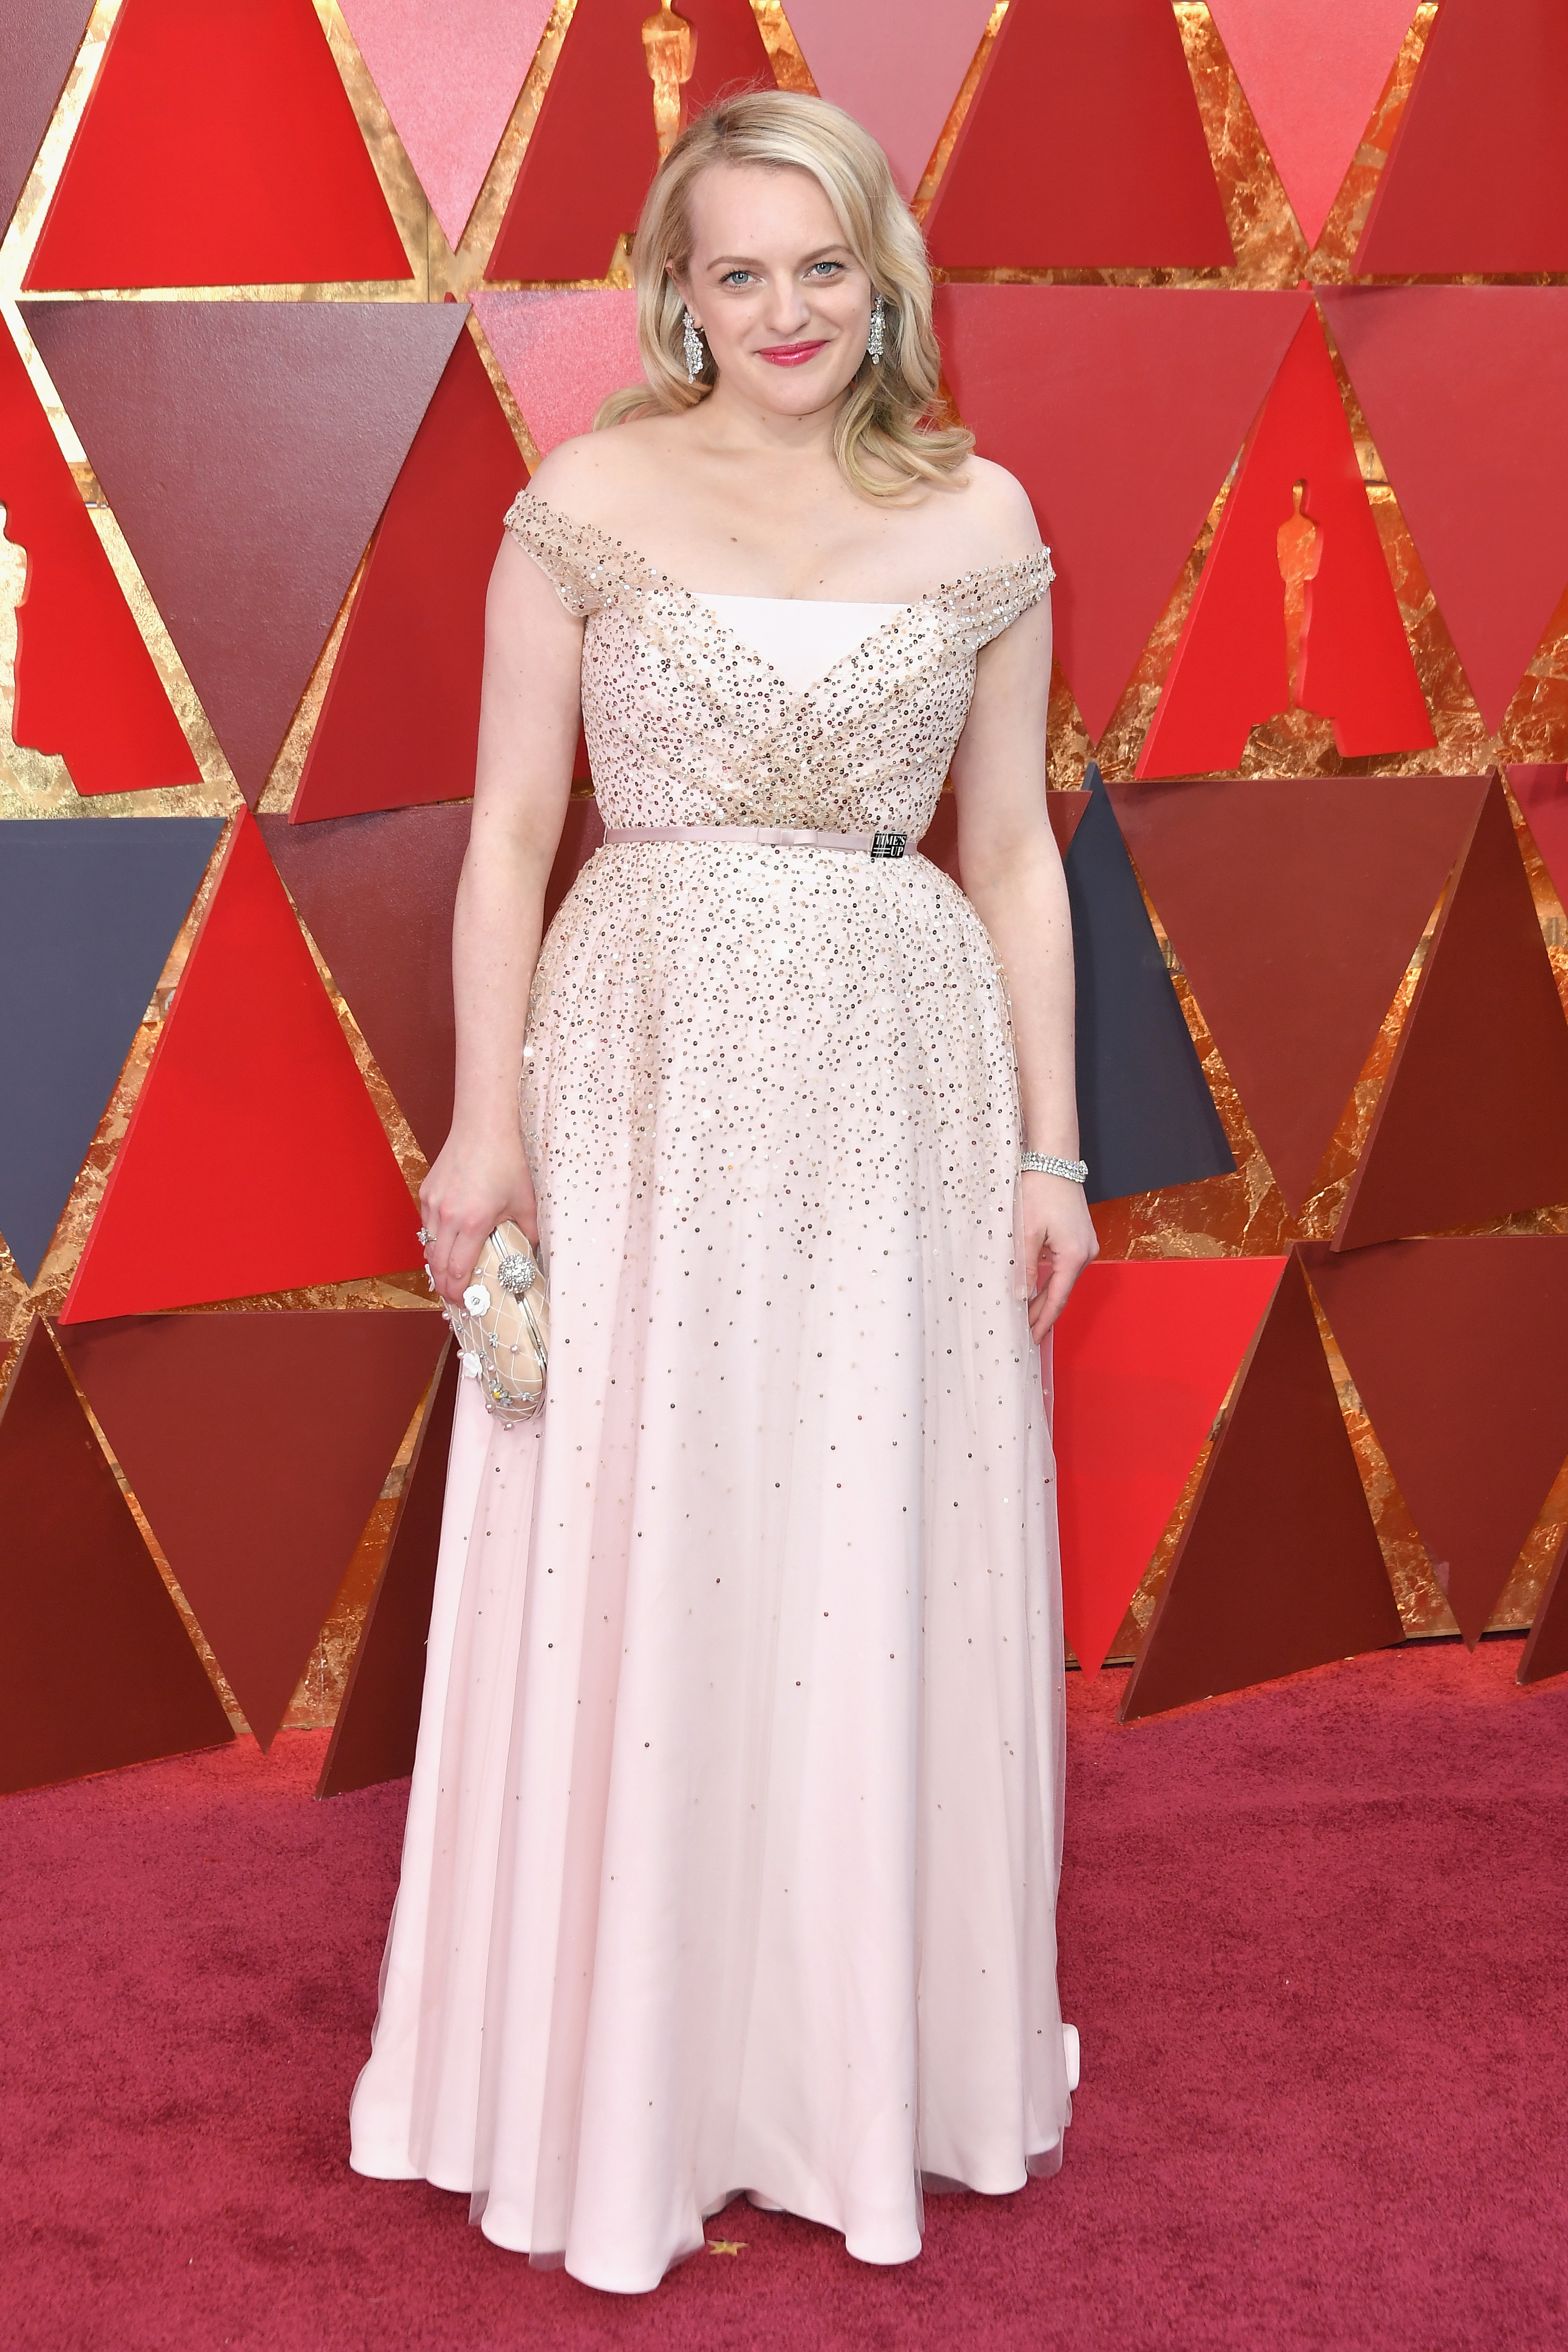 Elisabeth Moss at an event for The Oscars (2018)